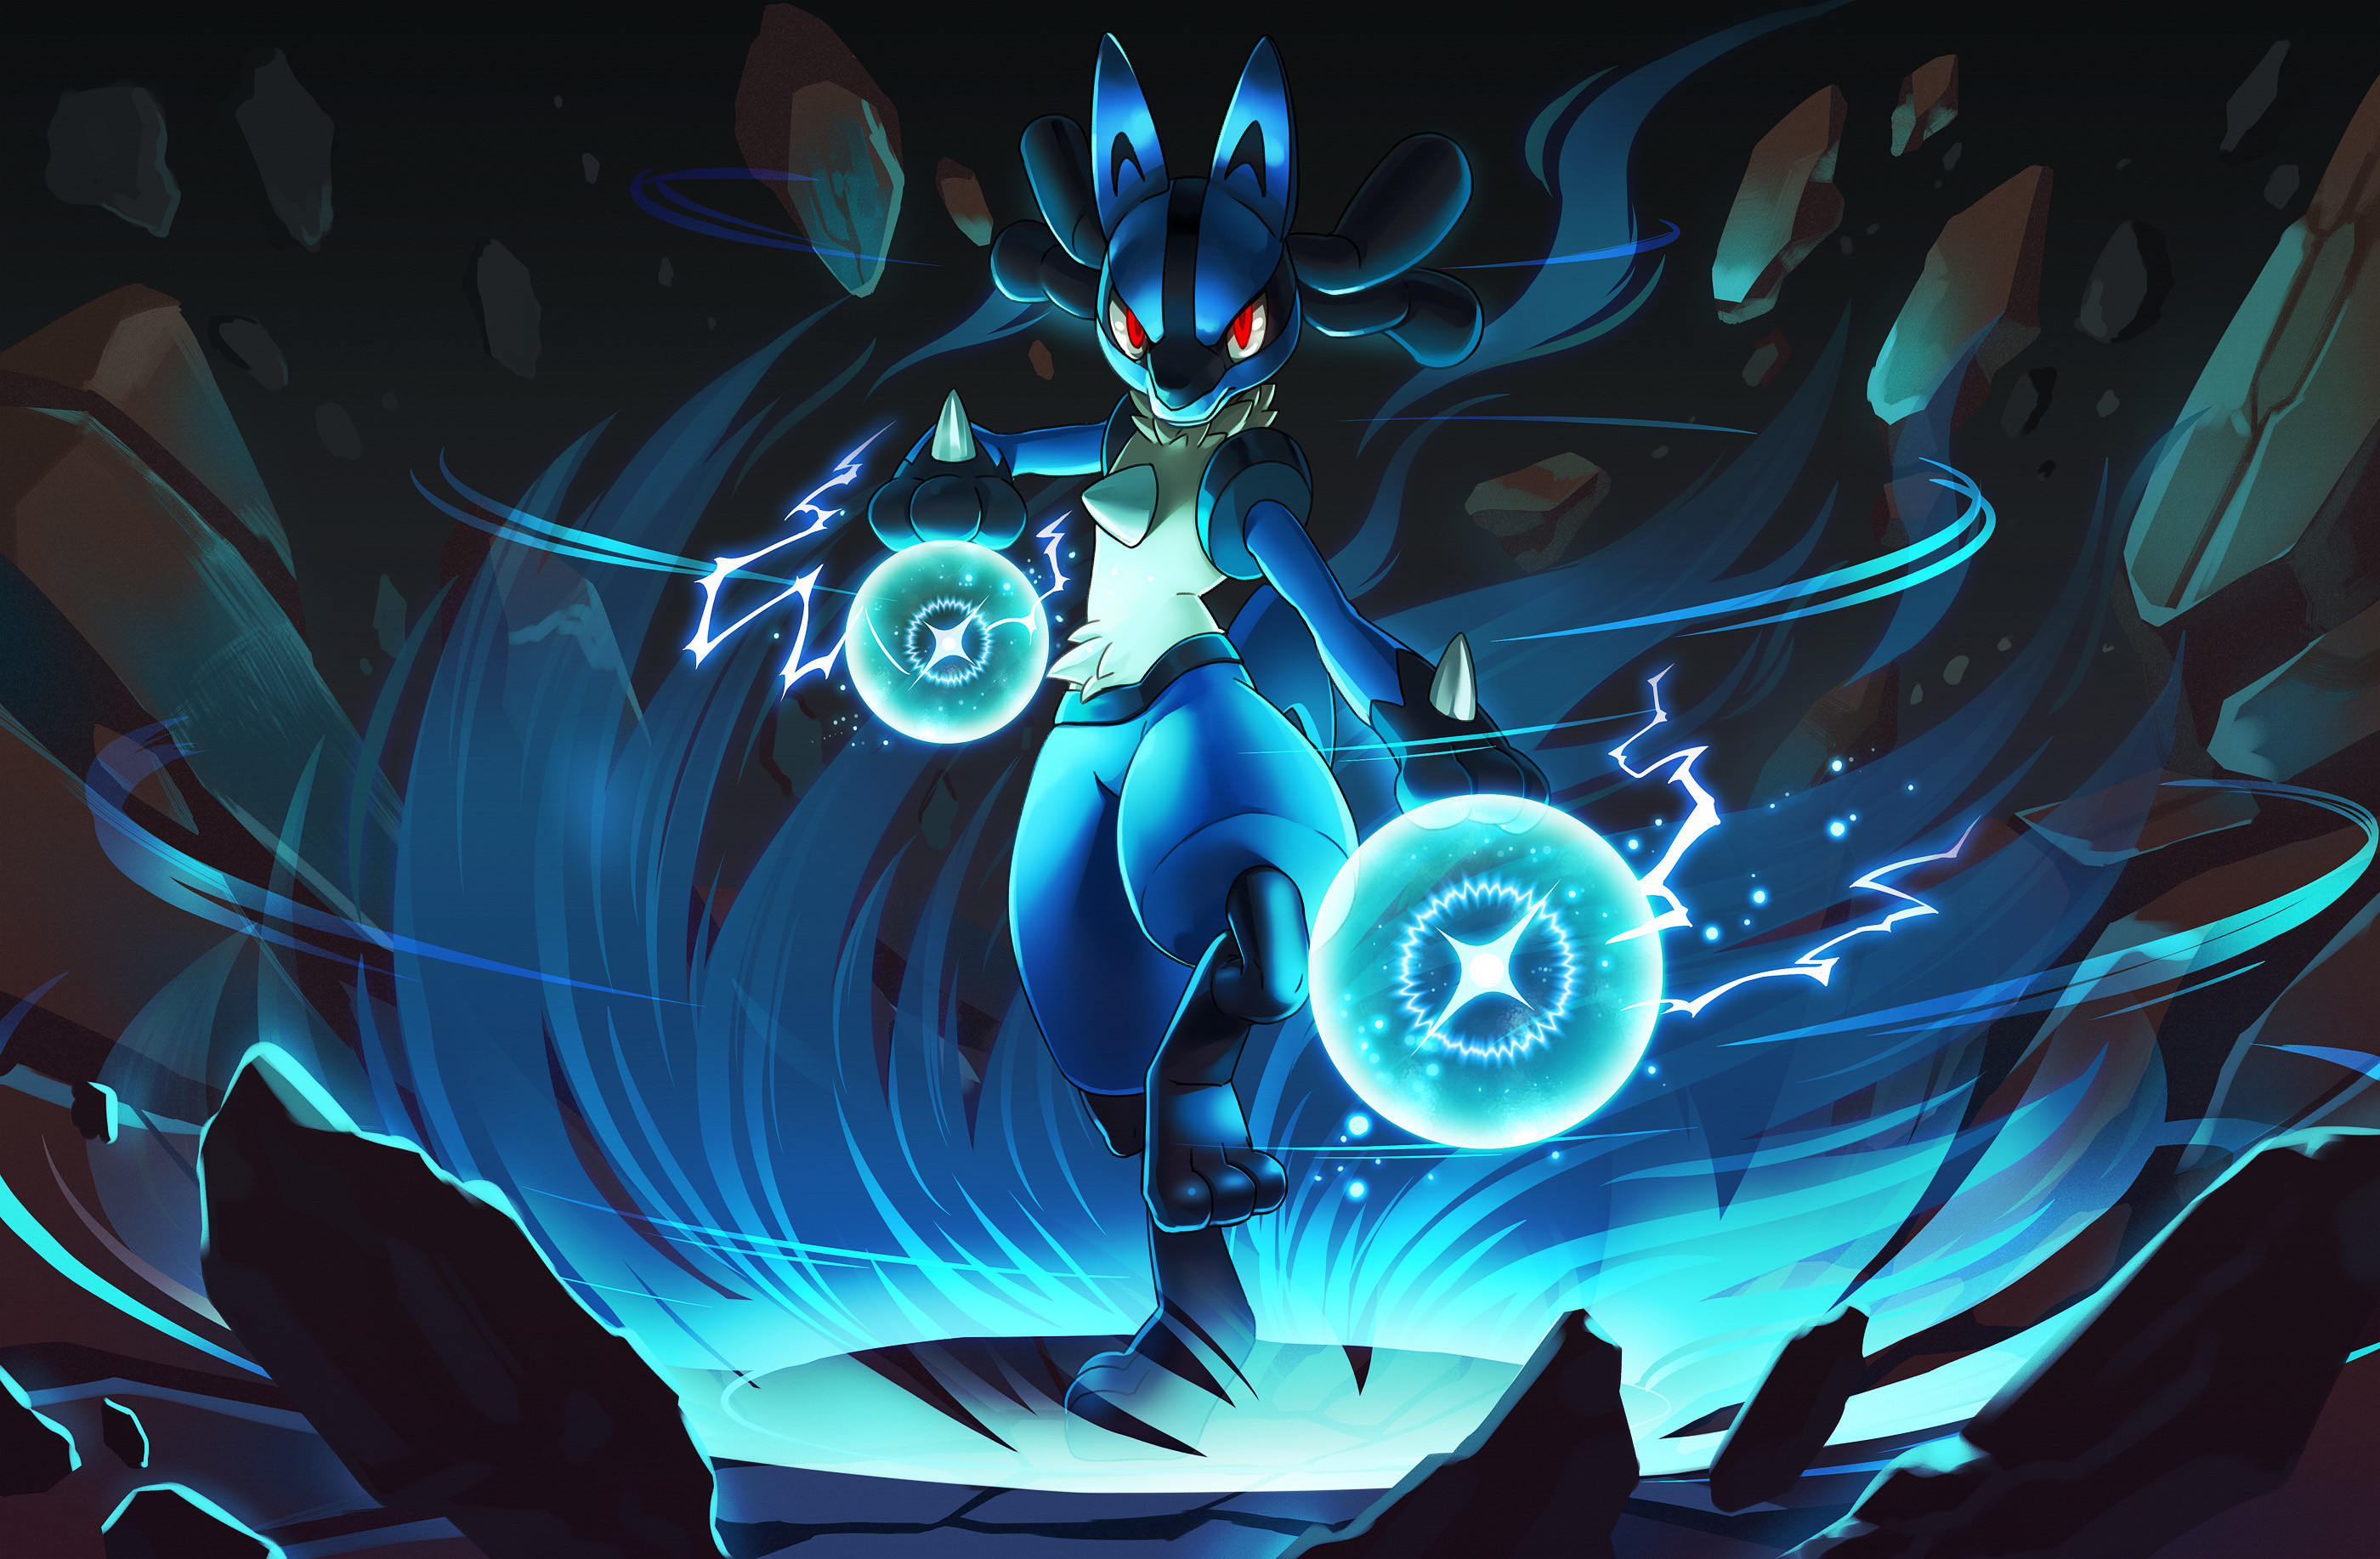 2800x1834 Pokémon HD Wallpaper | Background Image |  | ID:875827 - Wallpaper  Abyss